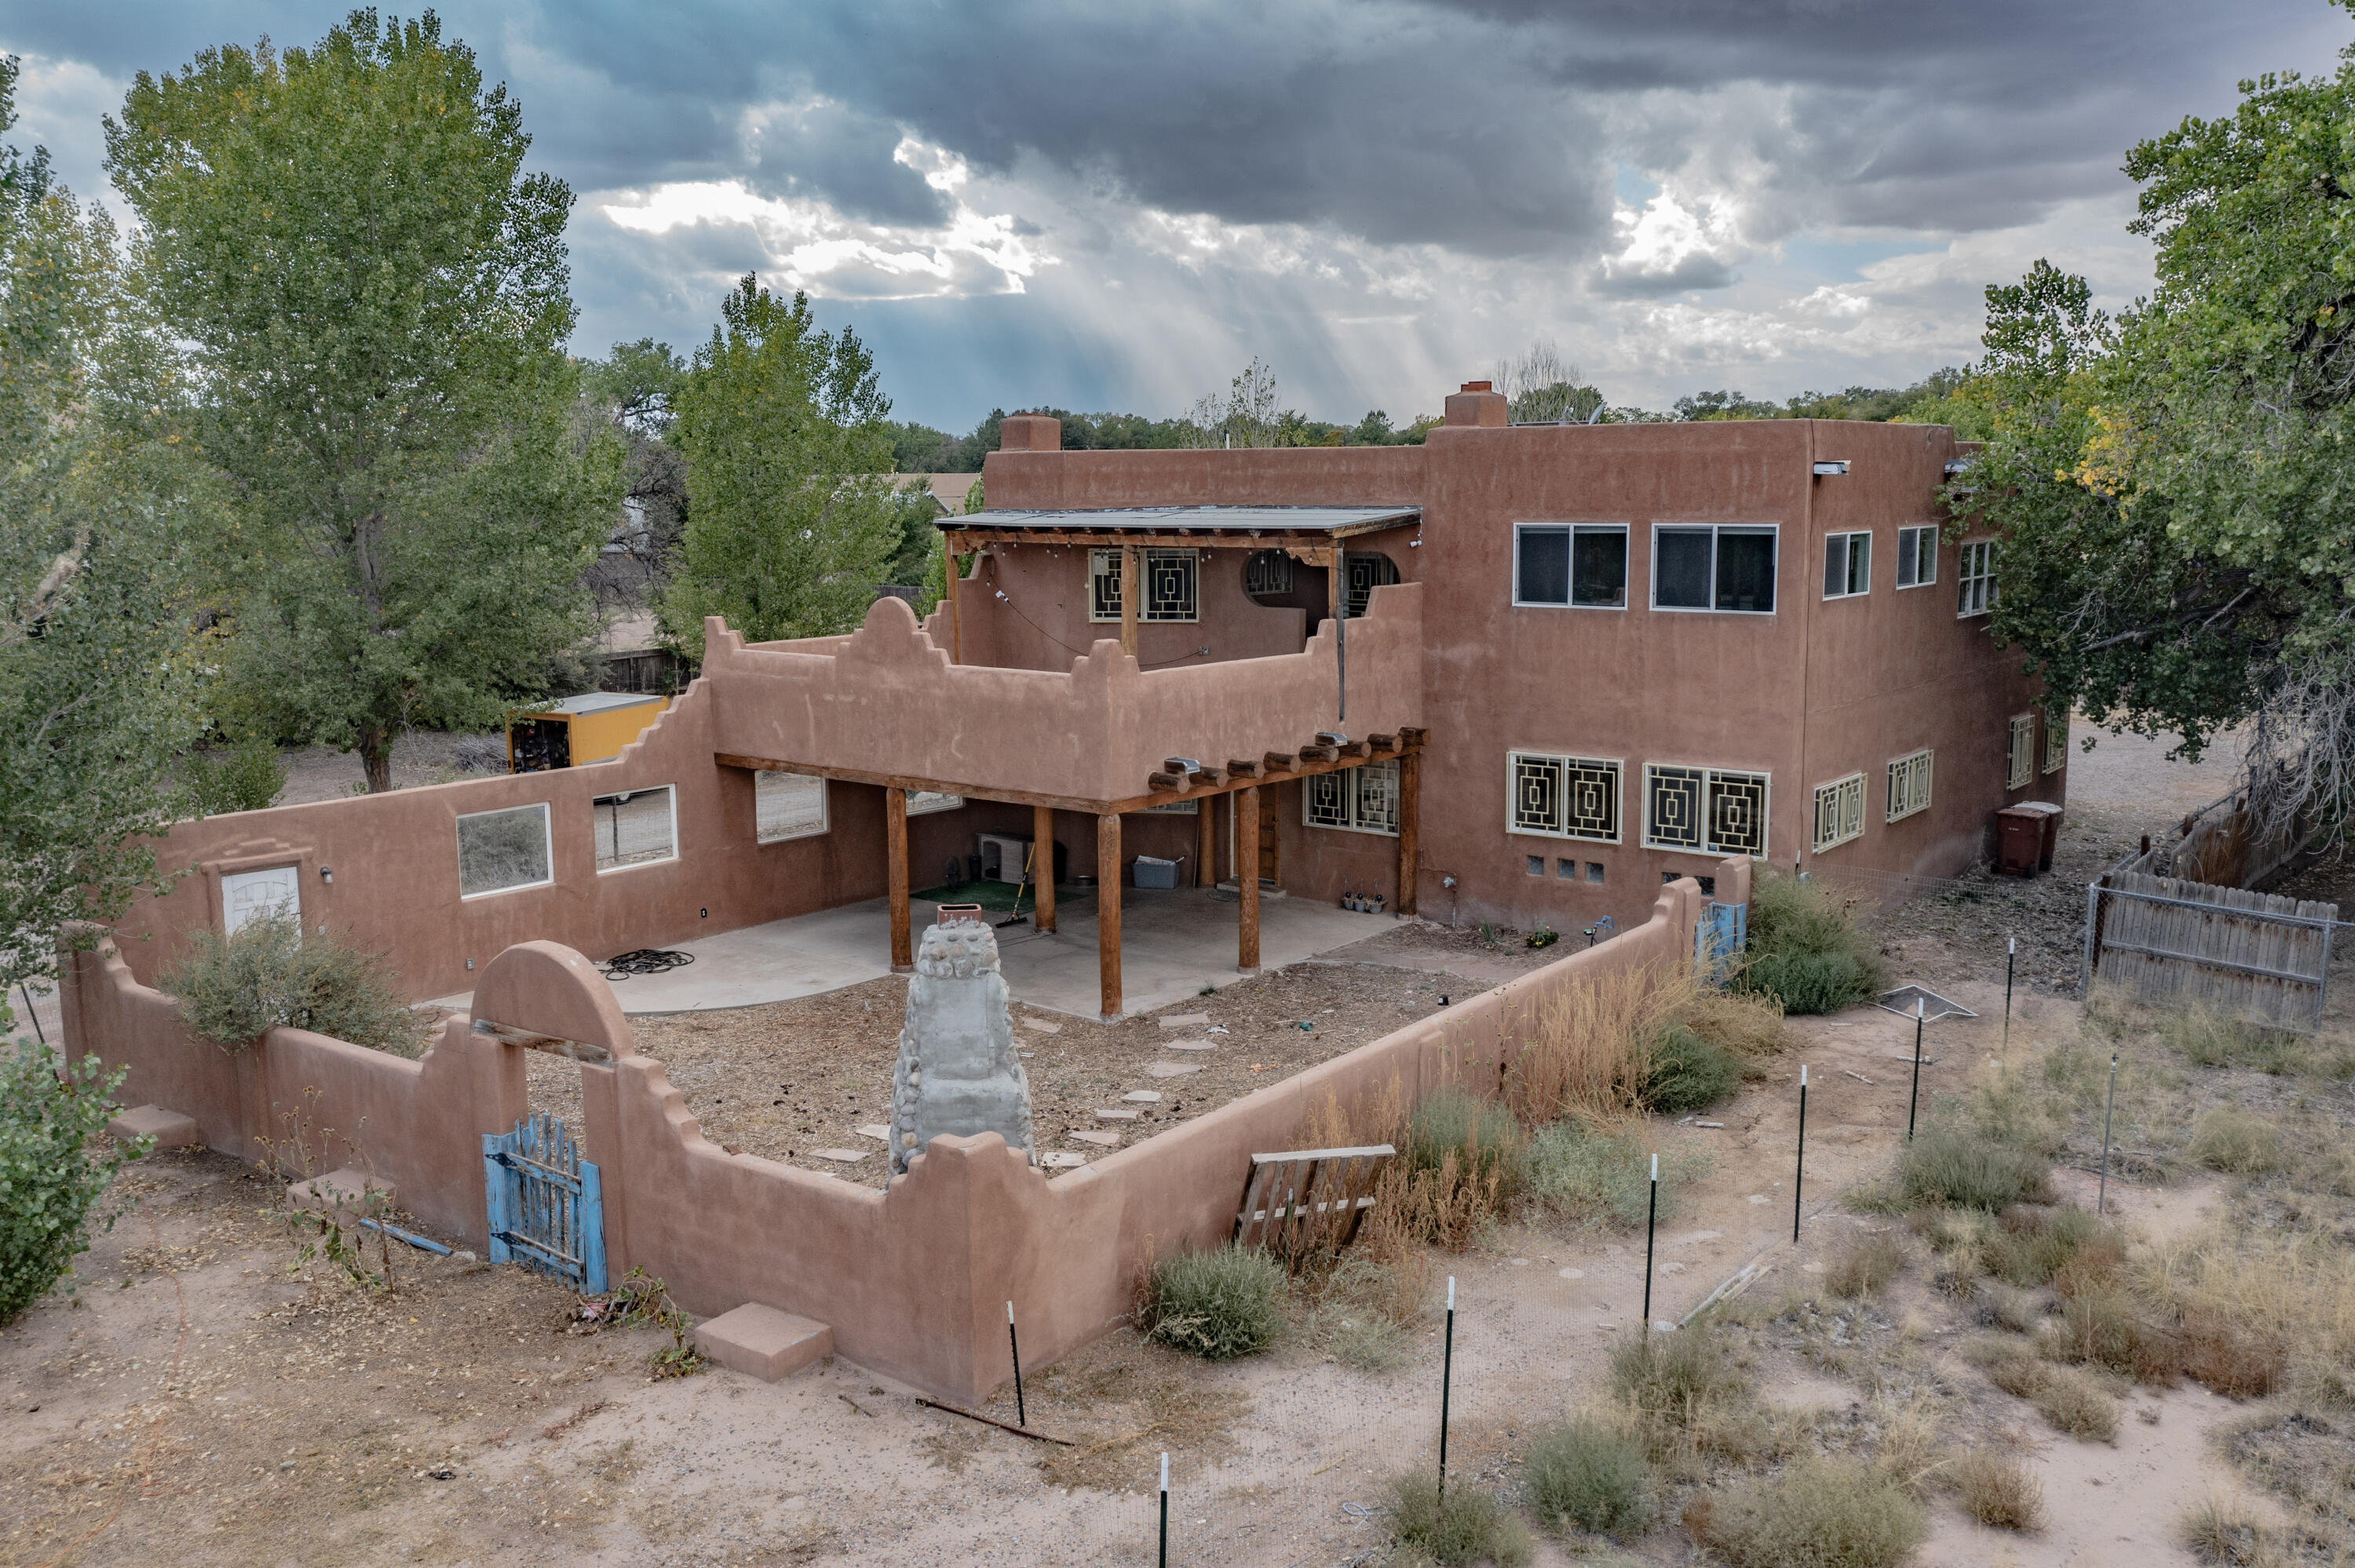 Custom built in 2007. Two Houses, EACH more than 4000 square feet, on 1.10 acres, in the Heart of the charming Village of Corrales. Live/Work, Live/Rent, Live/Extended or Multi-family. The Front House (3777) is eligible for Commercial, Residential or a combination application with 2 (bed)rooms and 1 bath downstairs, and 2 (bed)rooms and 1 bath upstairs. The Main House (3785), in back, has 4 bedrooms, 4 bathrooms, and multiple living spaces. Gorgeous views of the Sandia Mountains from inside, and outside on the Sunrise Deck. Party in the evening on the Sunset Deck. Why buy one when you can have two? Live in back and rent the front house, or use it as your law, medical, or other office, or retail space. Property is occupied. Drive down the road but please do not disturb the residents.